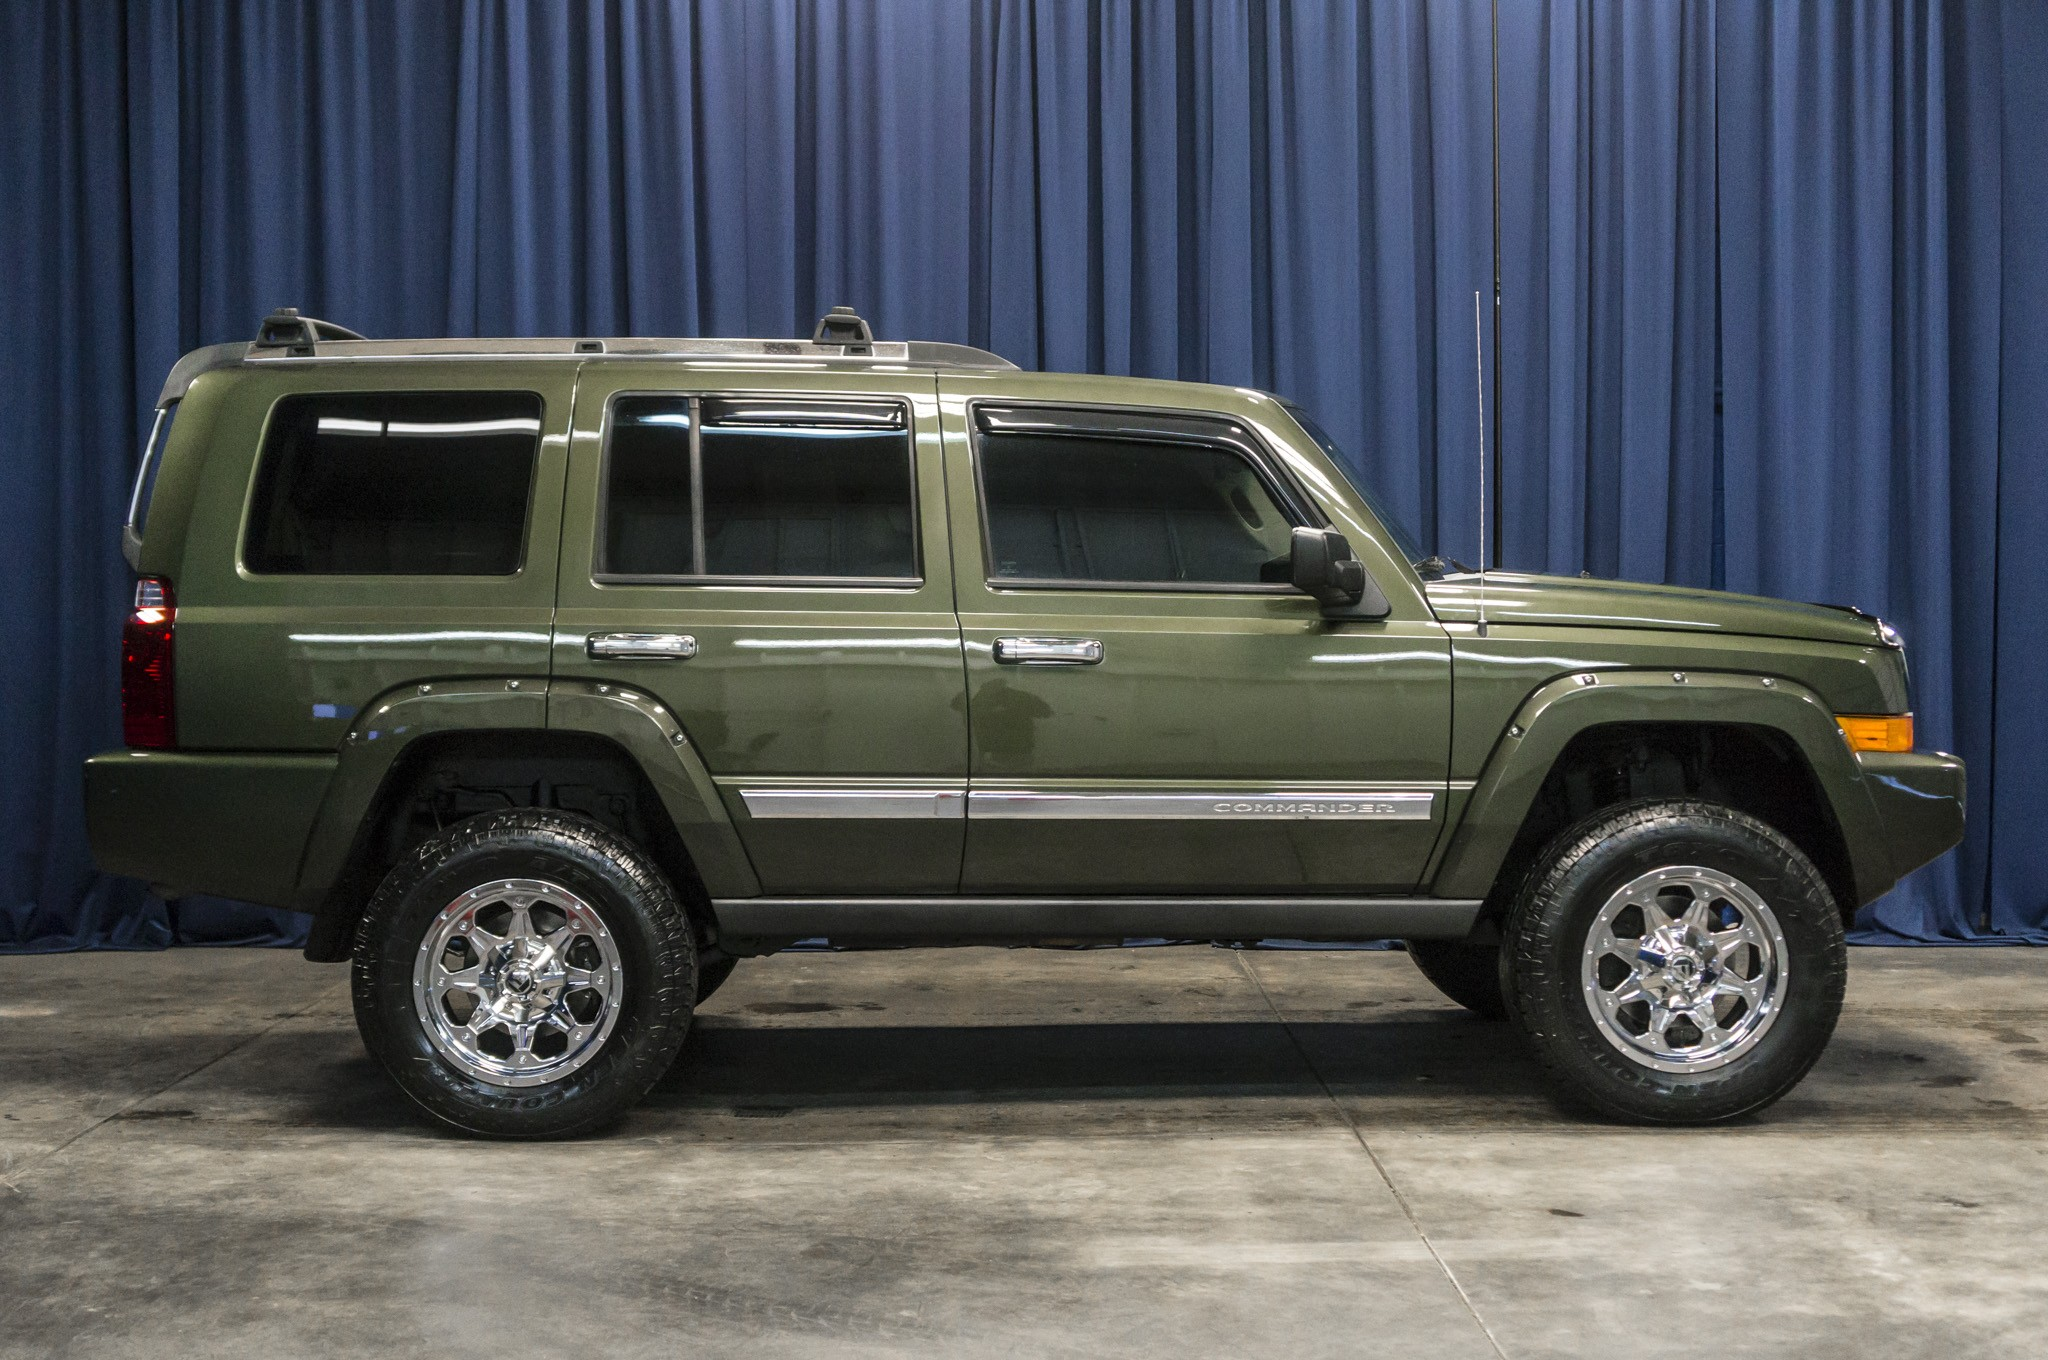 Used Lifted 2006 Jeep Commander Limited 4x4 SUV For Sale ...